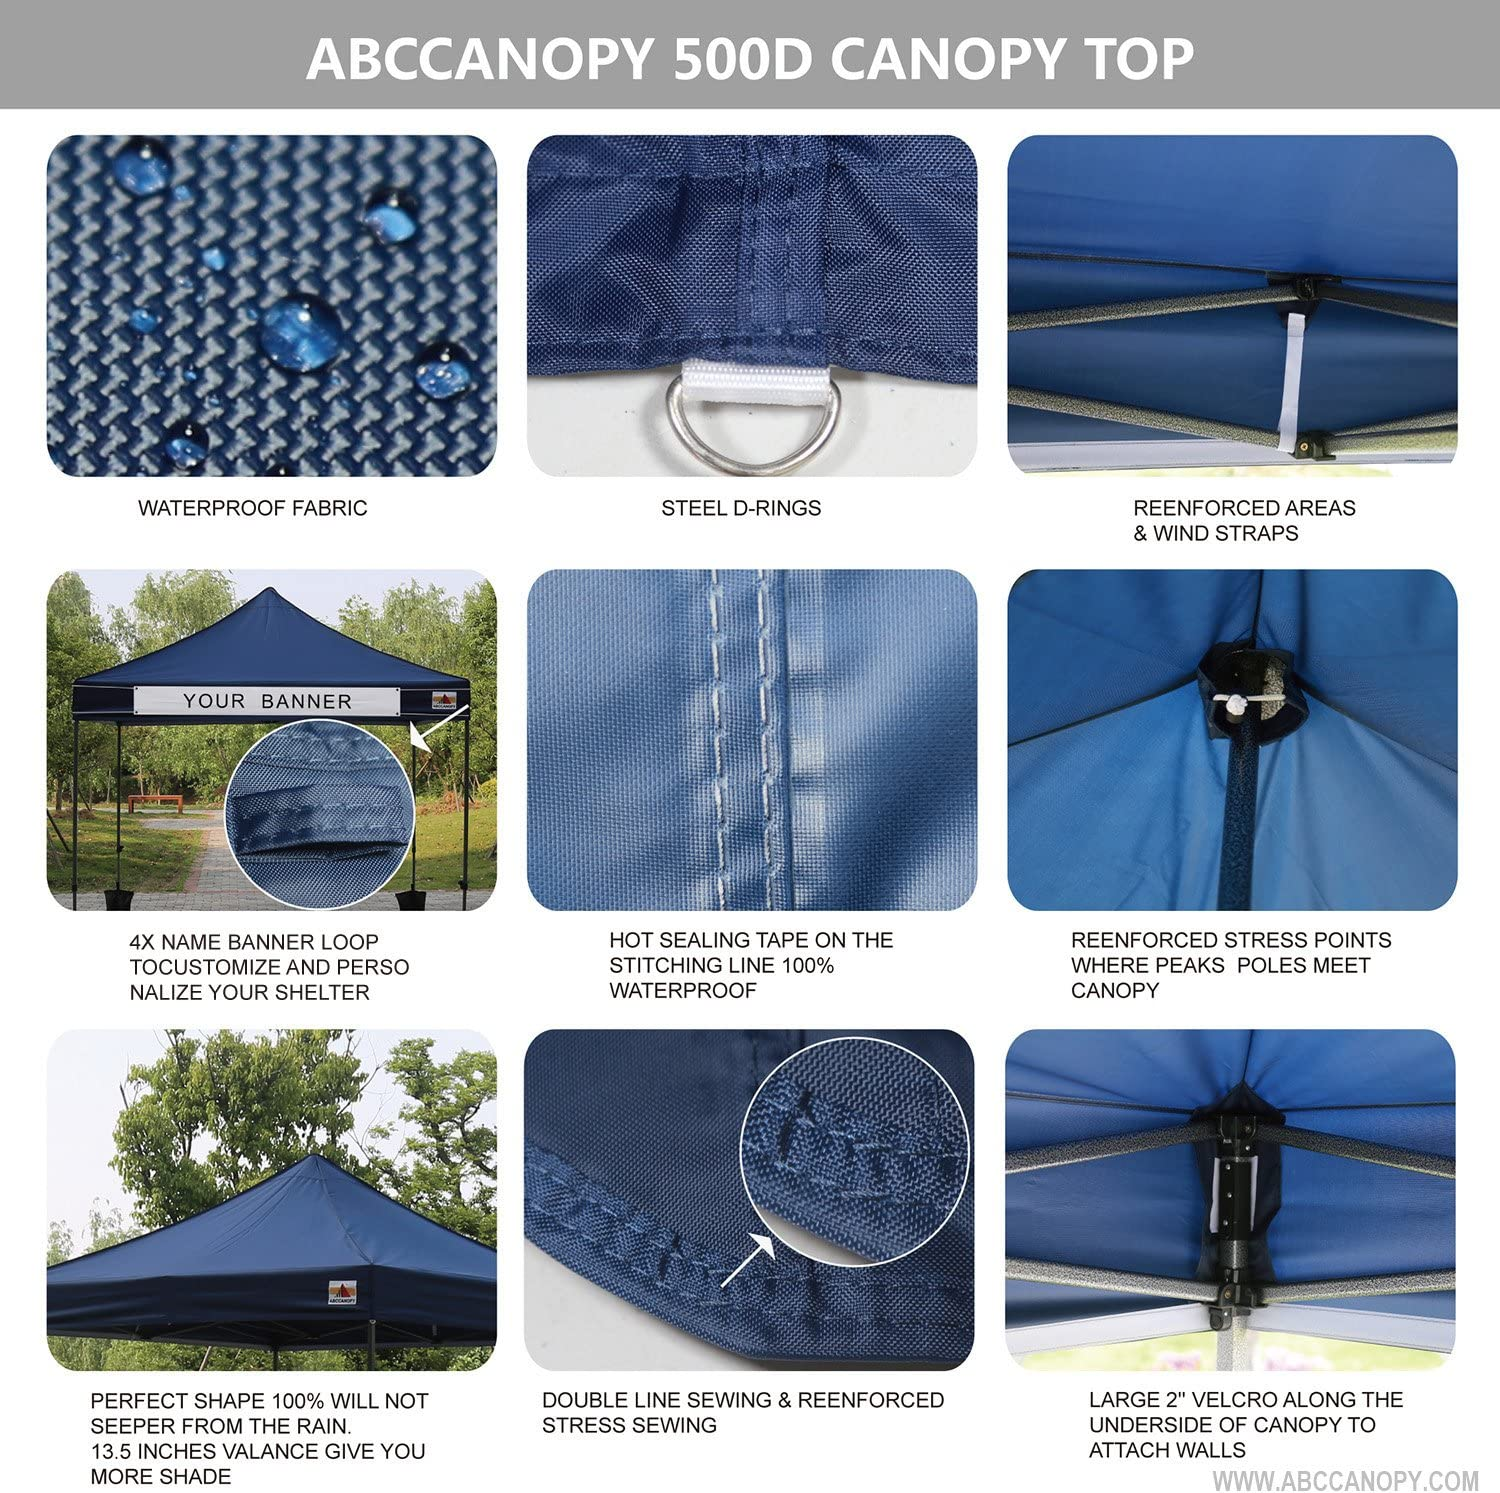 ABCCANOPY Canopy Tent Popup Canopy 10x10 Pop Up Canopies Commercial Tents Market stall with 6 Removable Sidewalls and Roller Bag Bonus 4 Weight Bags and 10ft Screen Netting and Half Wall Gray